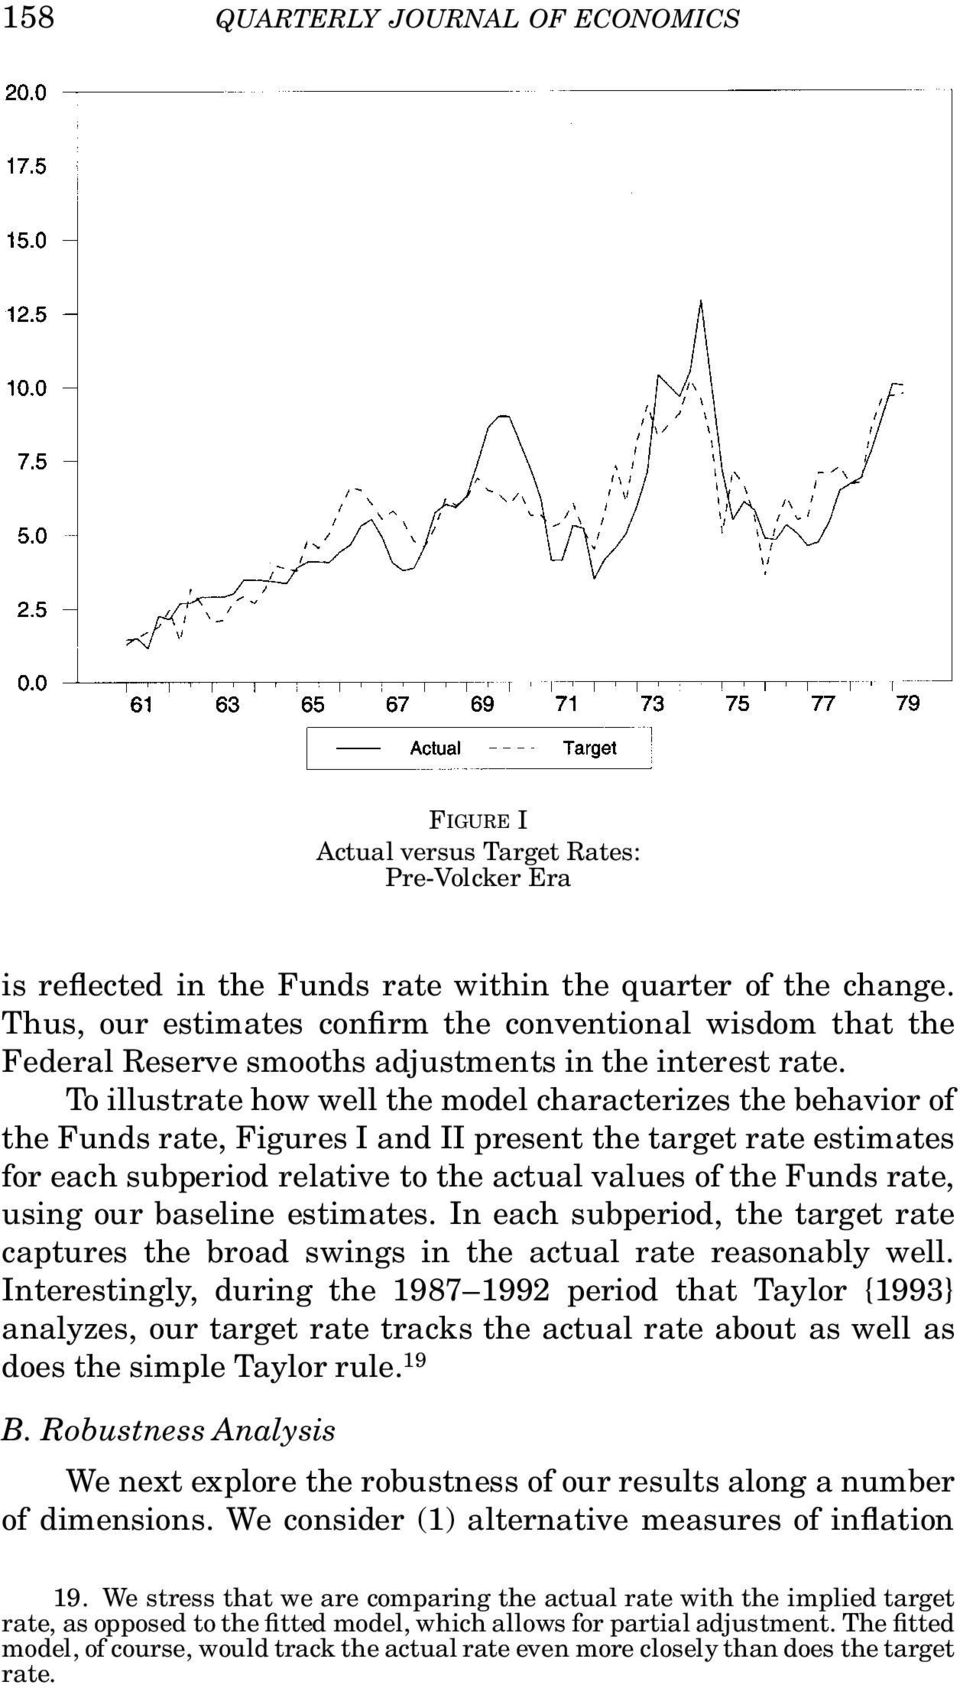 To illustrate how well the model characterizes the behavior of the Funds rate, Figures I and II present the target rate estimates for each subperiod relative to the actual values of the Funds rate,